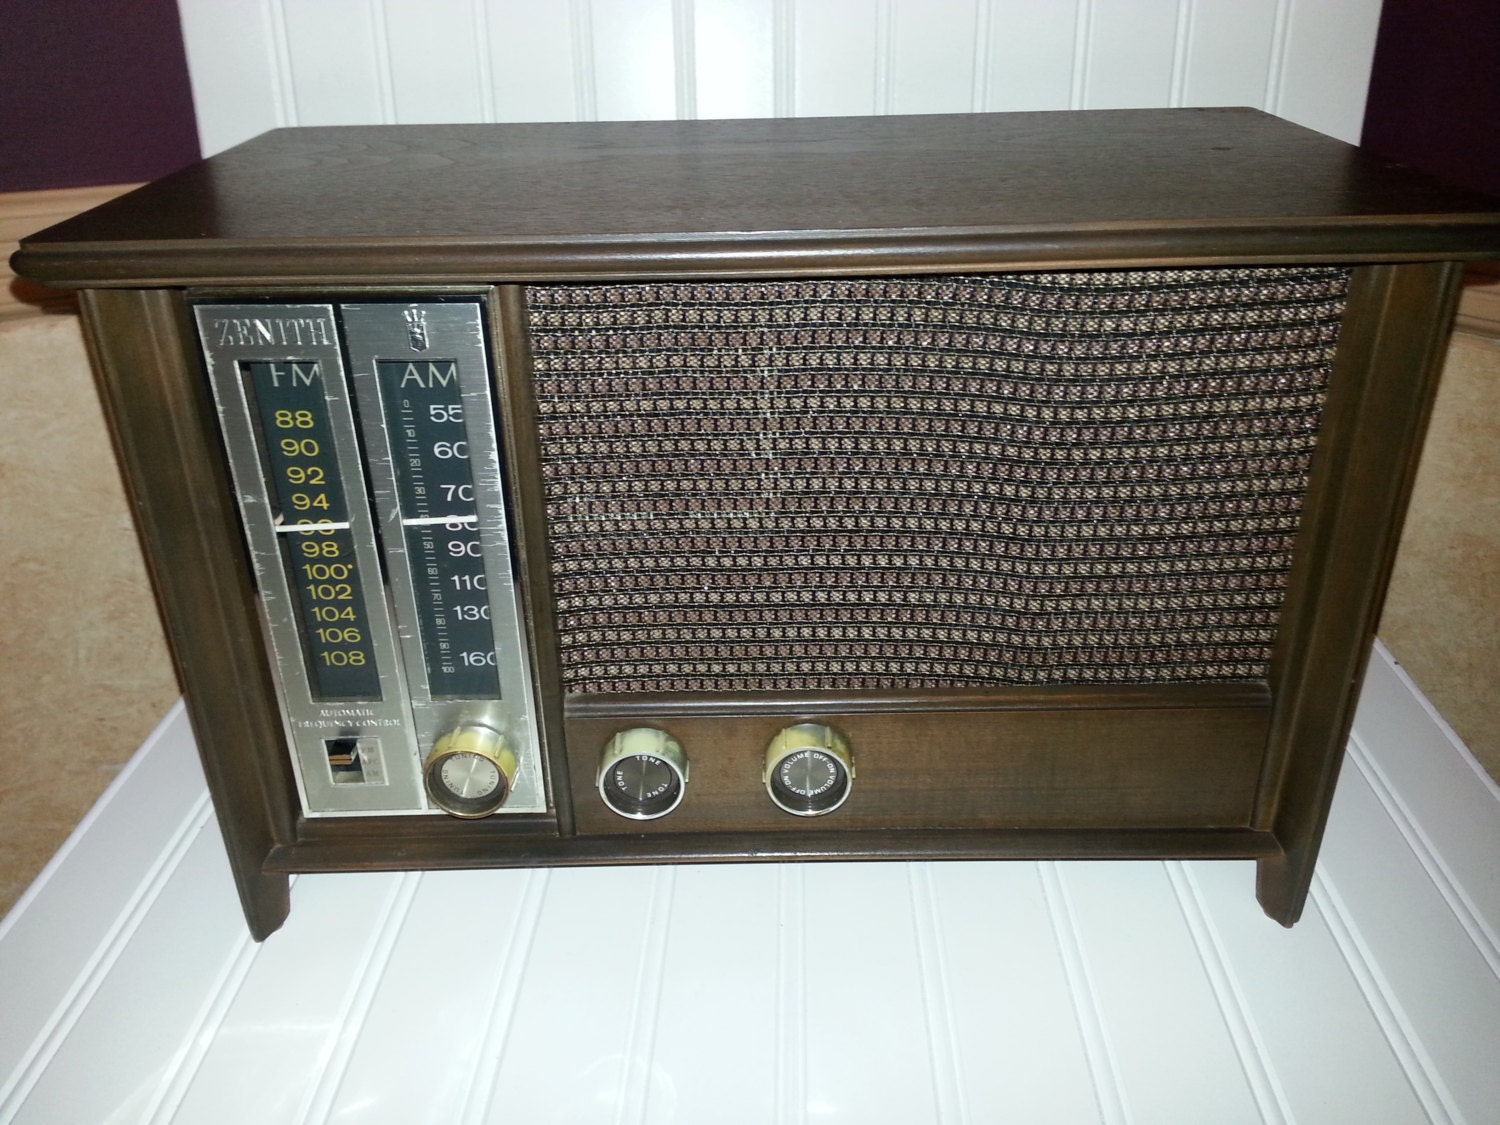 zenith table top am fm radio 1960 39 s vintage radio. Black Bedroom Furniture Sets. Home Design Ideas